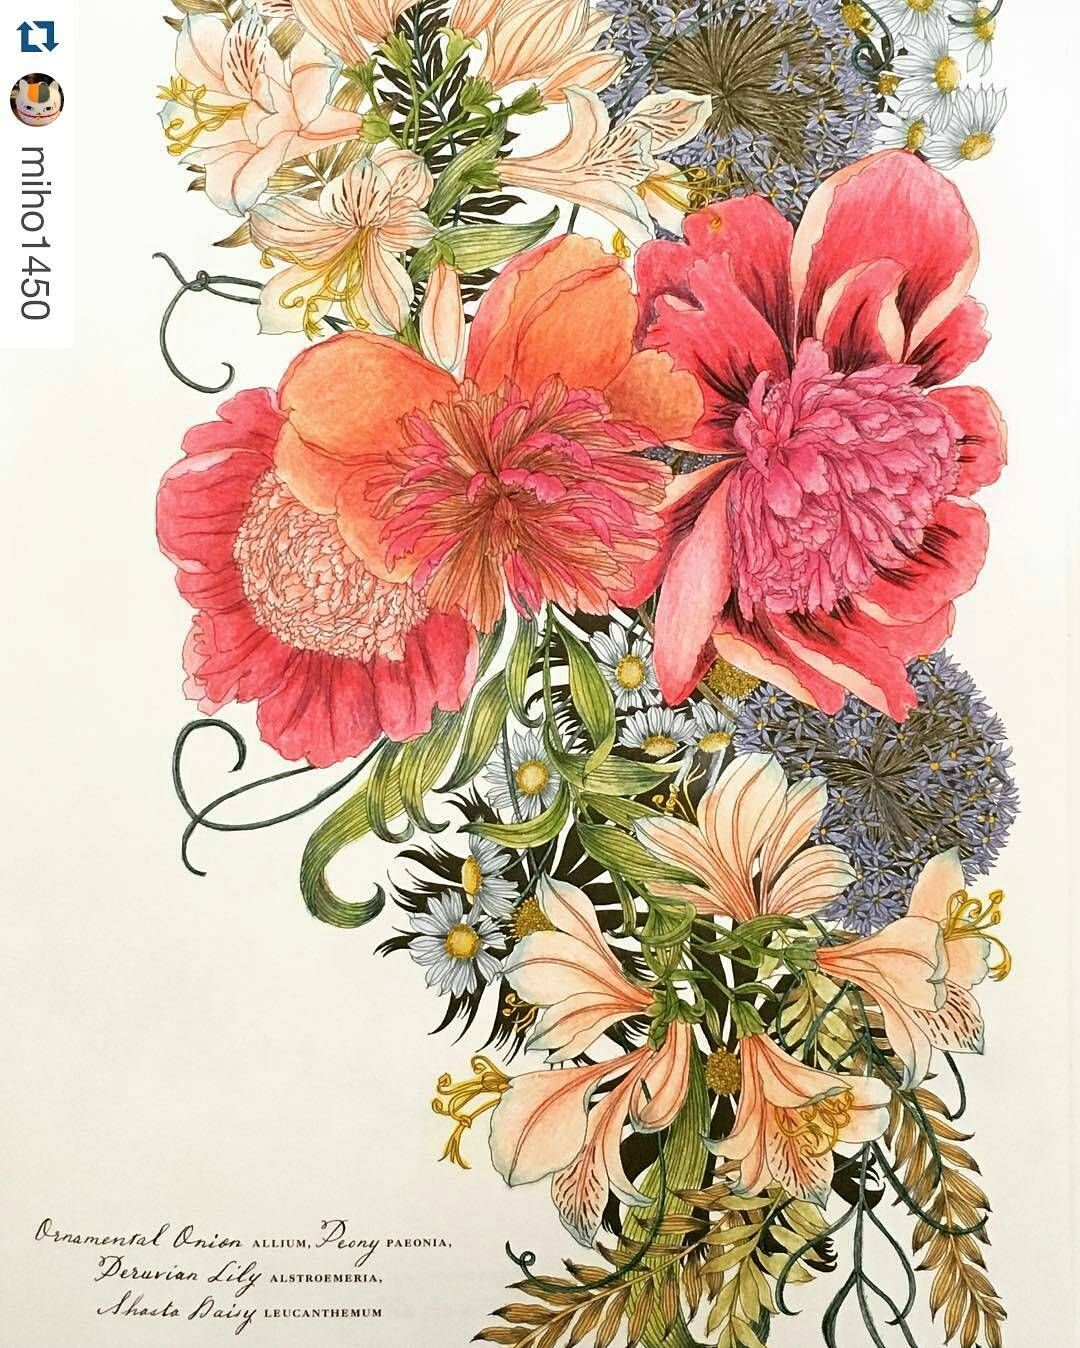 Pin by Ruth O\'Hara on Floribunda | Pinterest | Coloring books, Adult ...